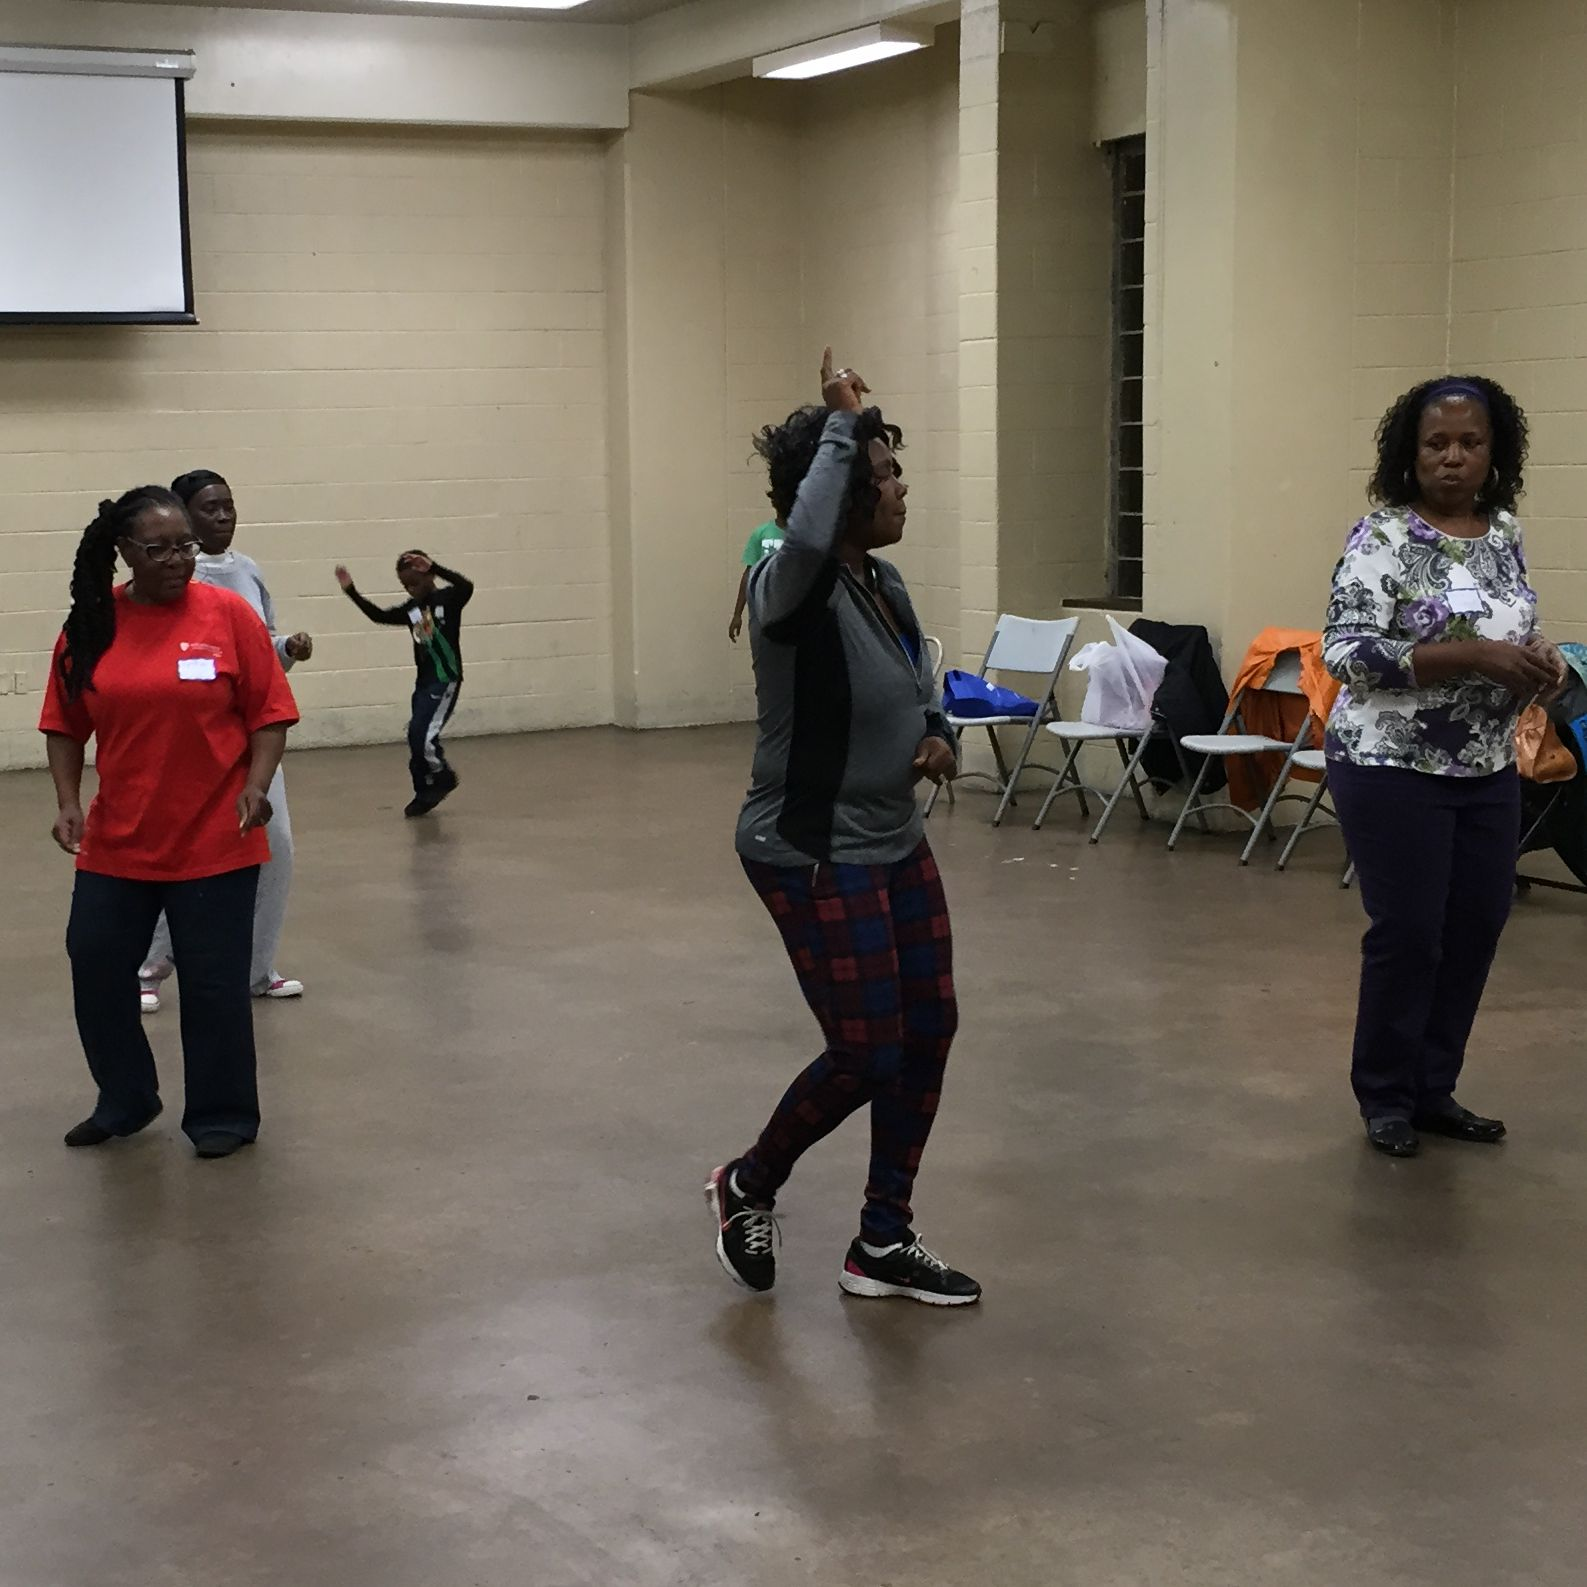 Participants of the Penn Nursing Community Champions program Dance for Health follow the lead of instructor Selena Williams.